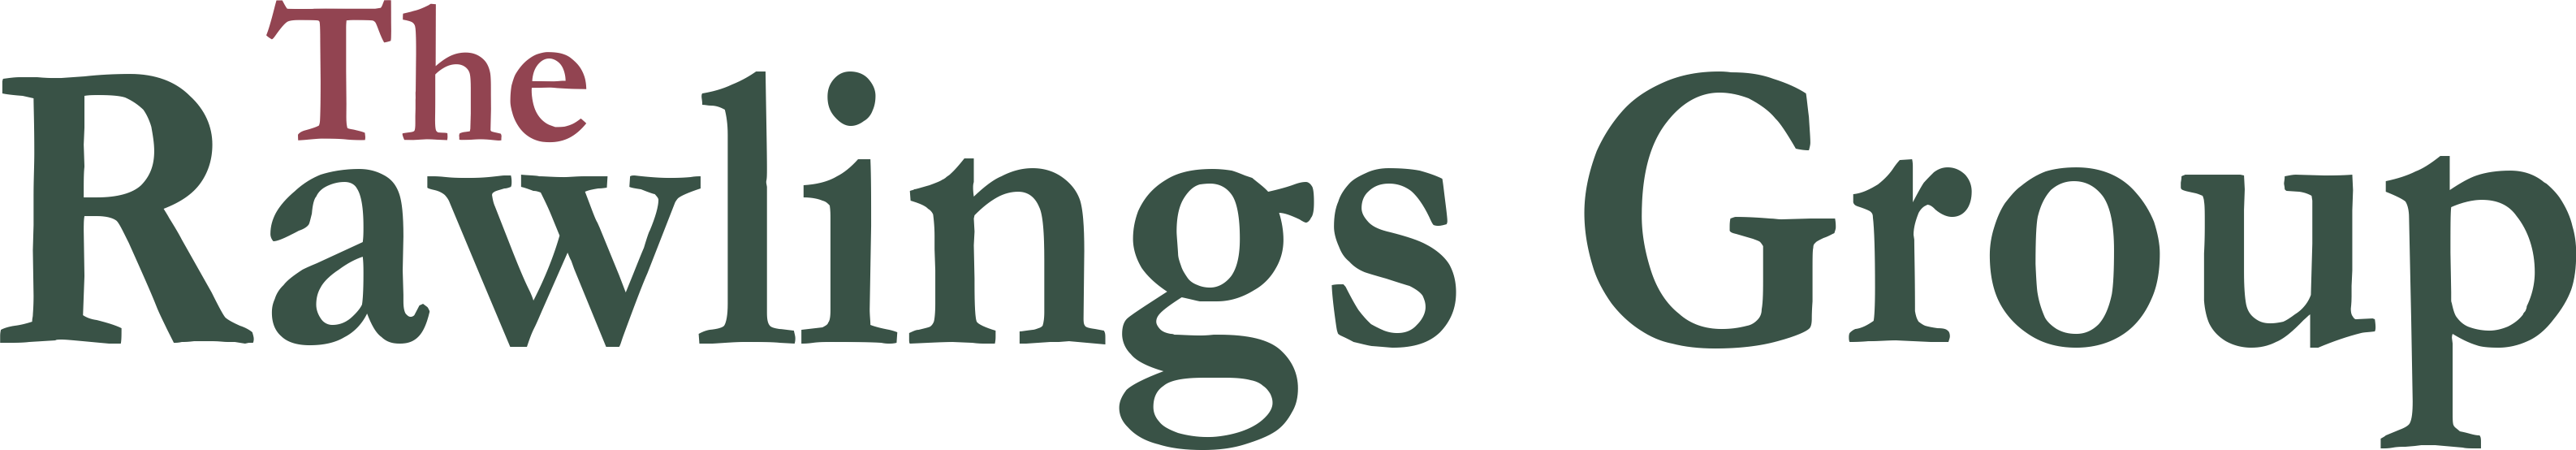 The Rawlings Group